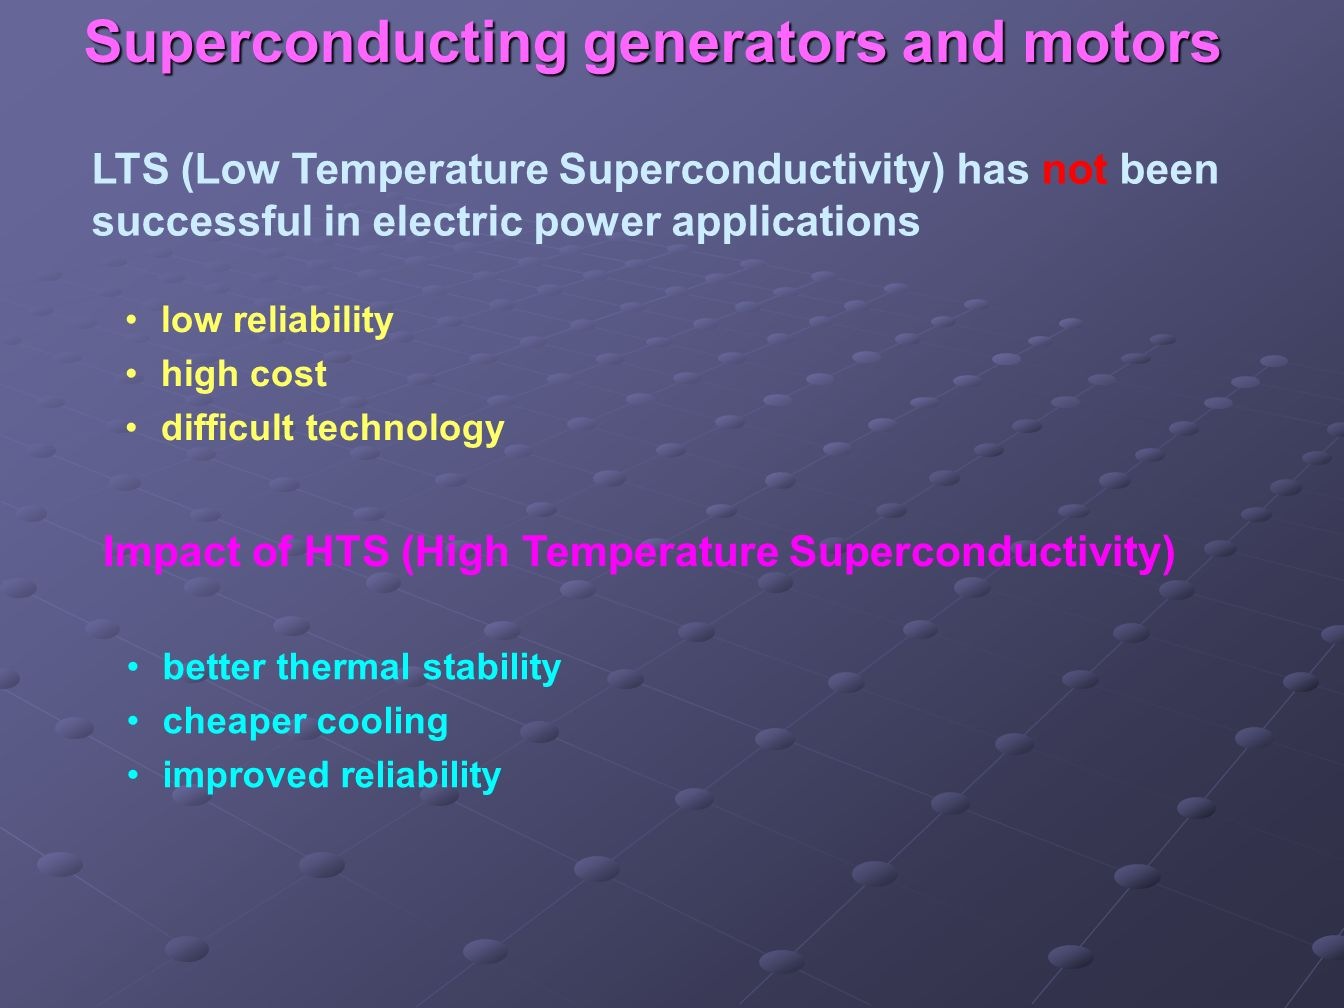 Superconducting generators and motors